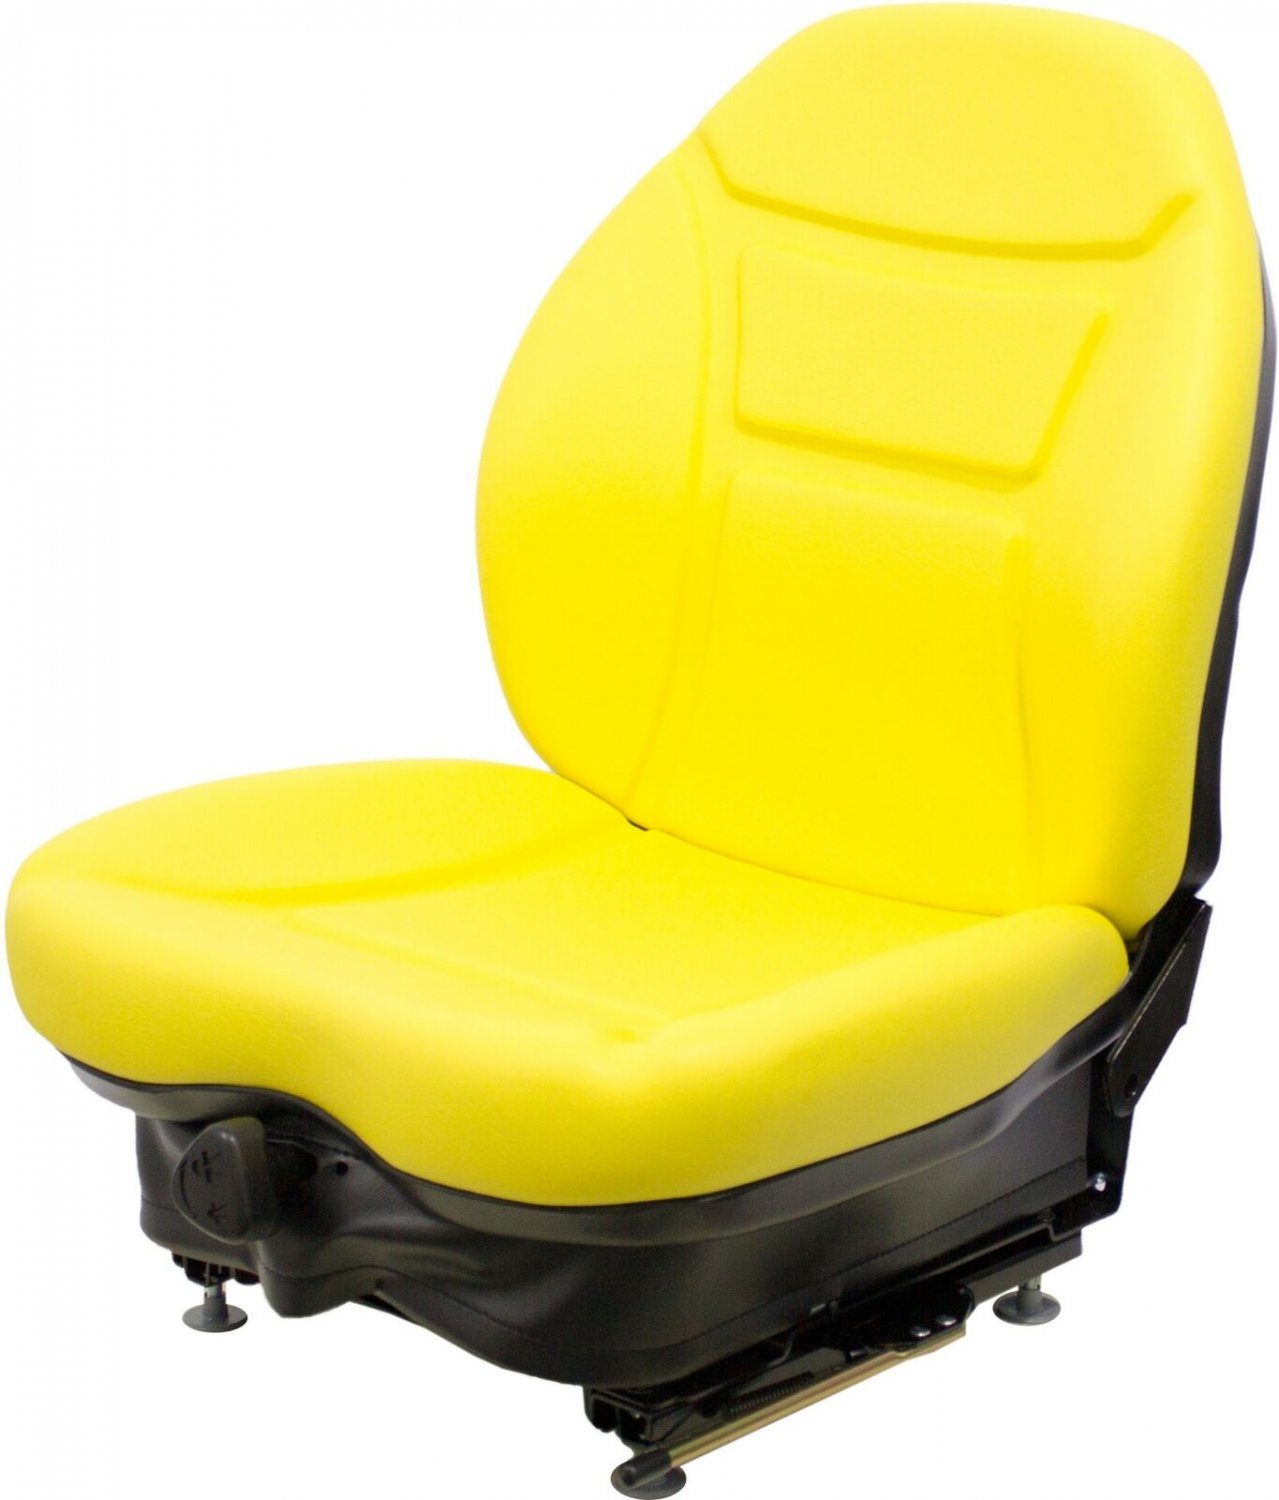 Milsco Brand CR100 Yellow Vinyl Seat and Suspension for Multiple Machines